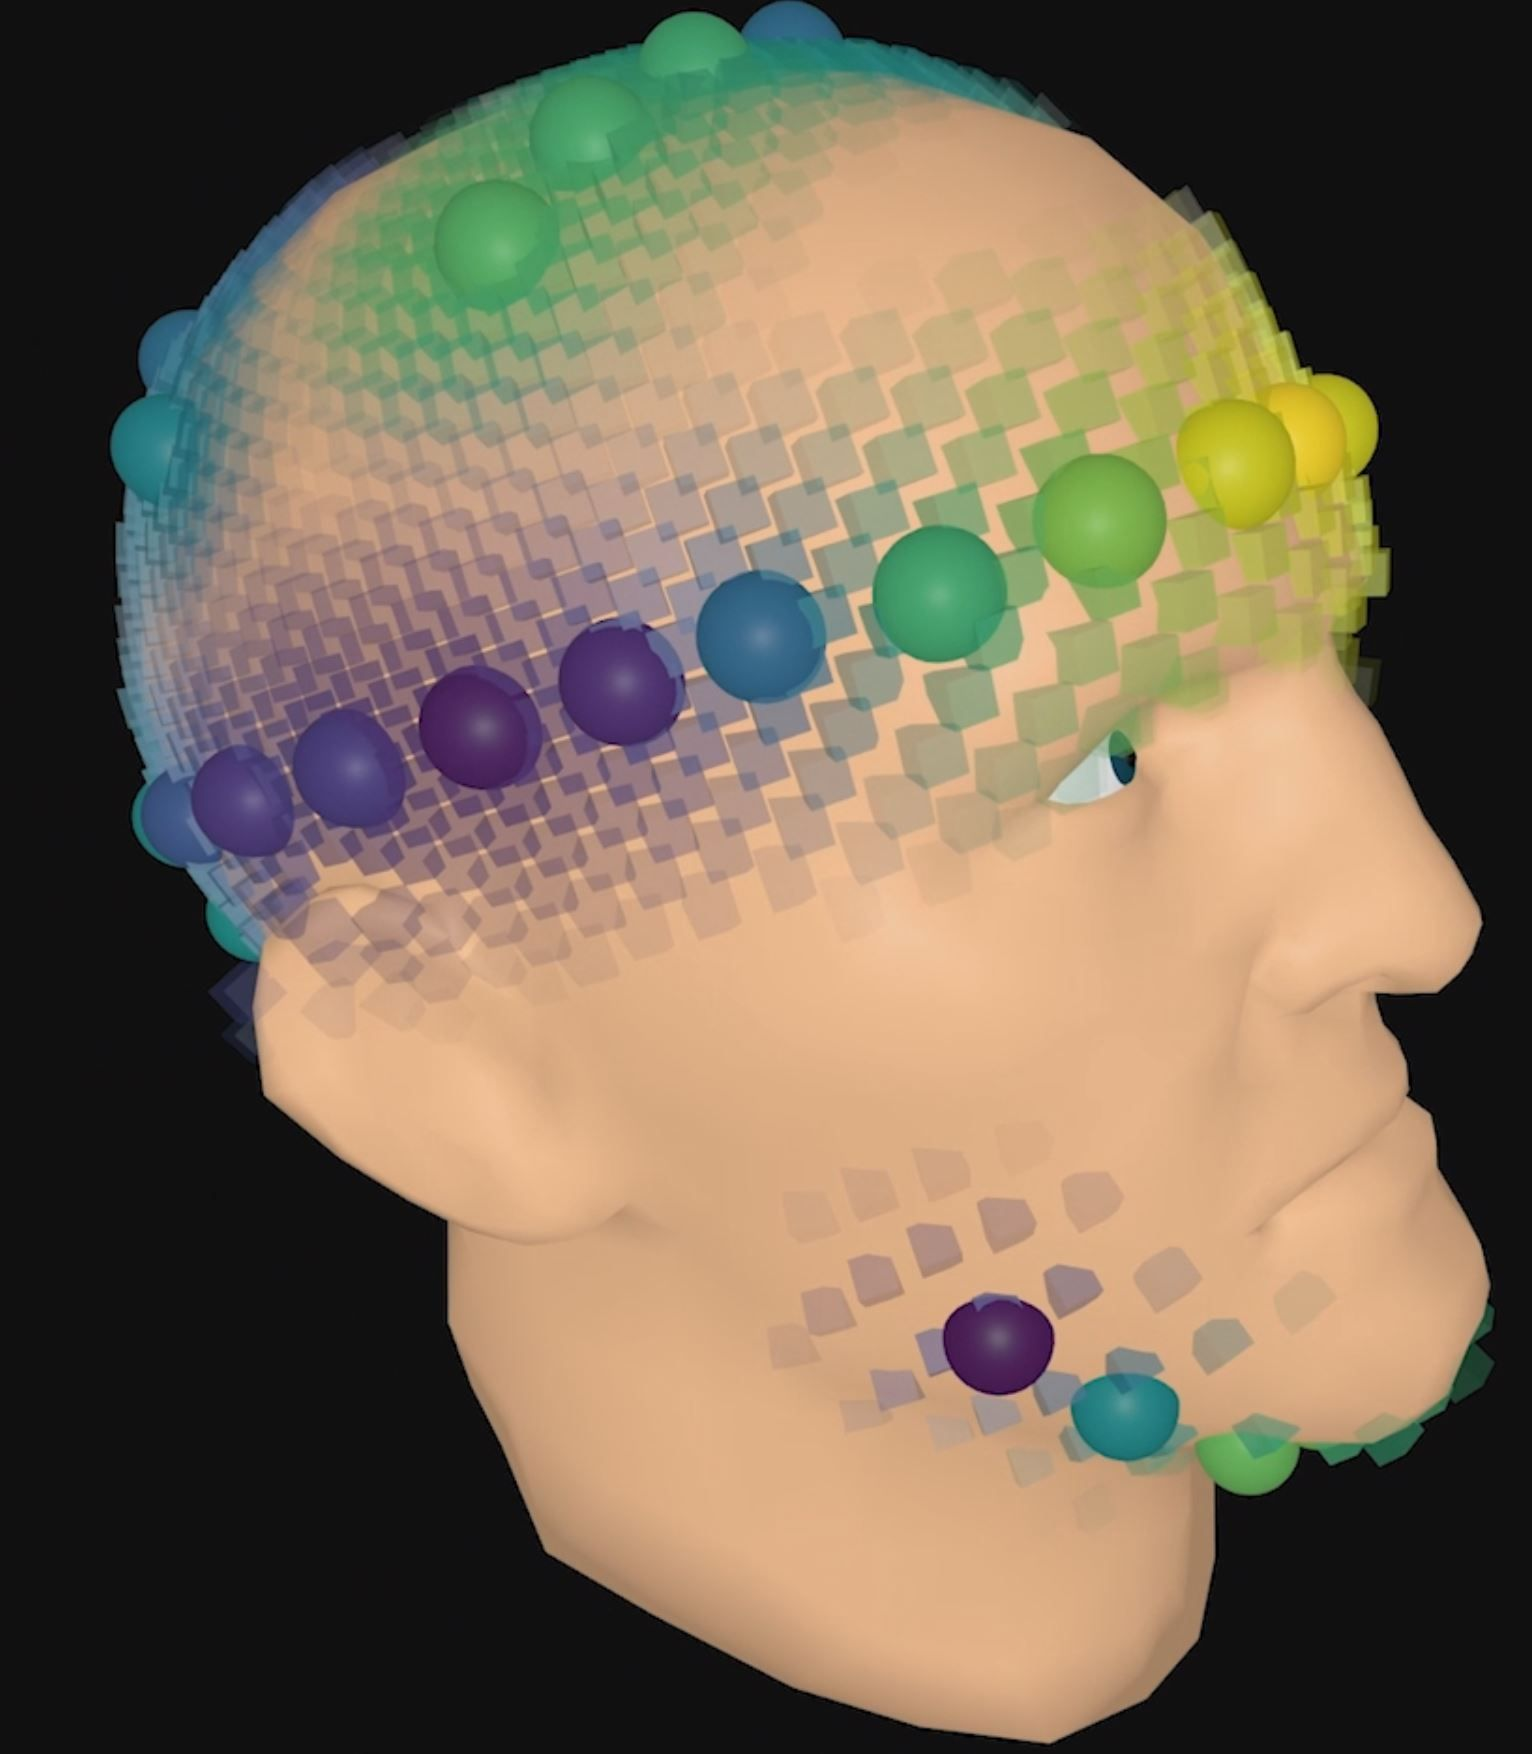 Vibrotactile Funneling Illusion and Localization Performance on the Head